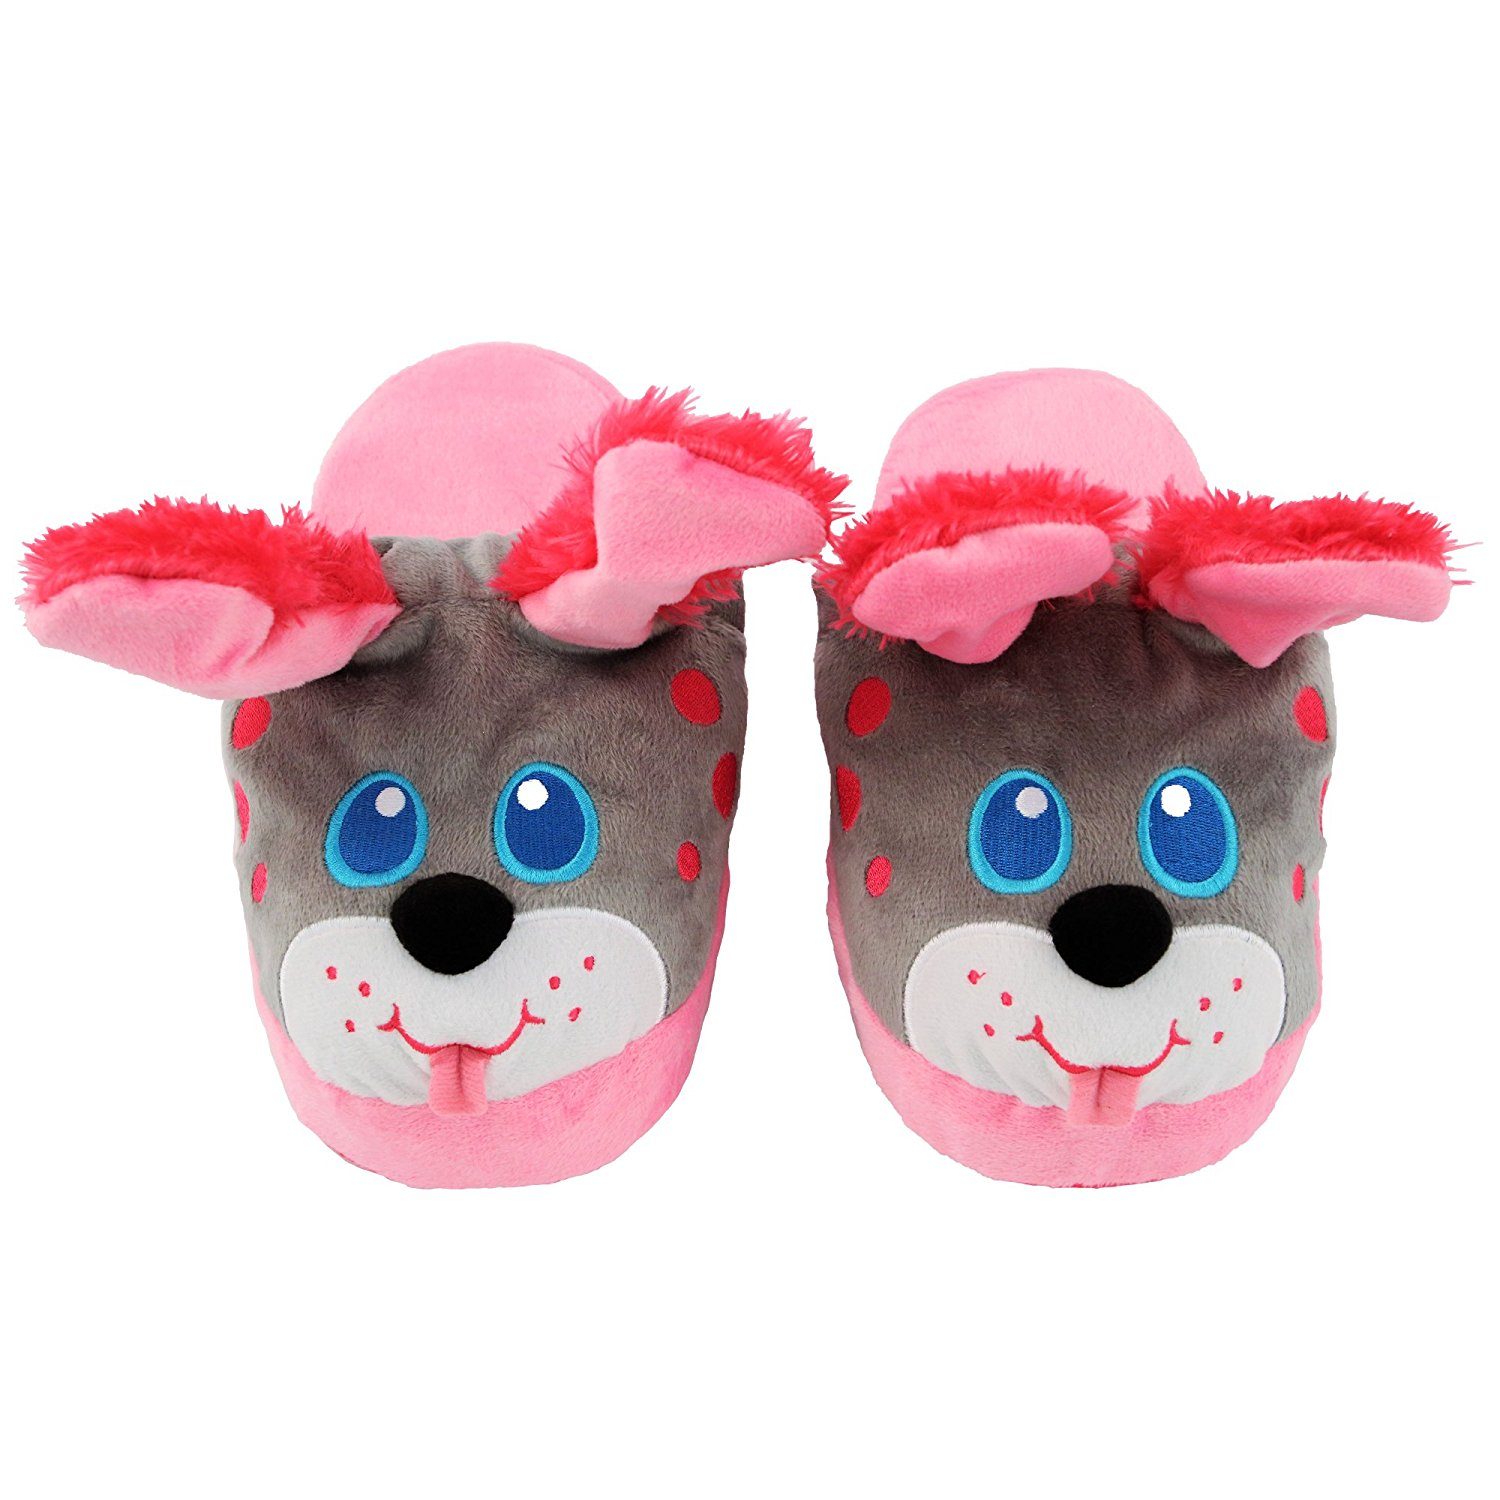 28f209d31f6 Get Quotations · Stompeez Animated Pink Puppy Plush Slippers - Ultra Soft  and Fuzzy - Ears Flap as You